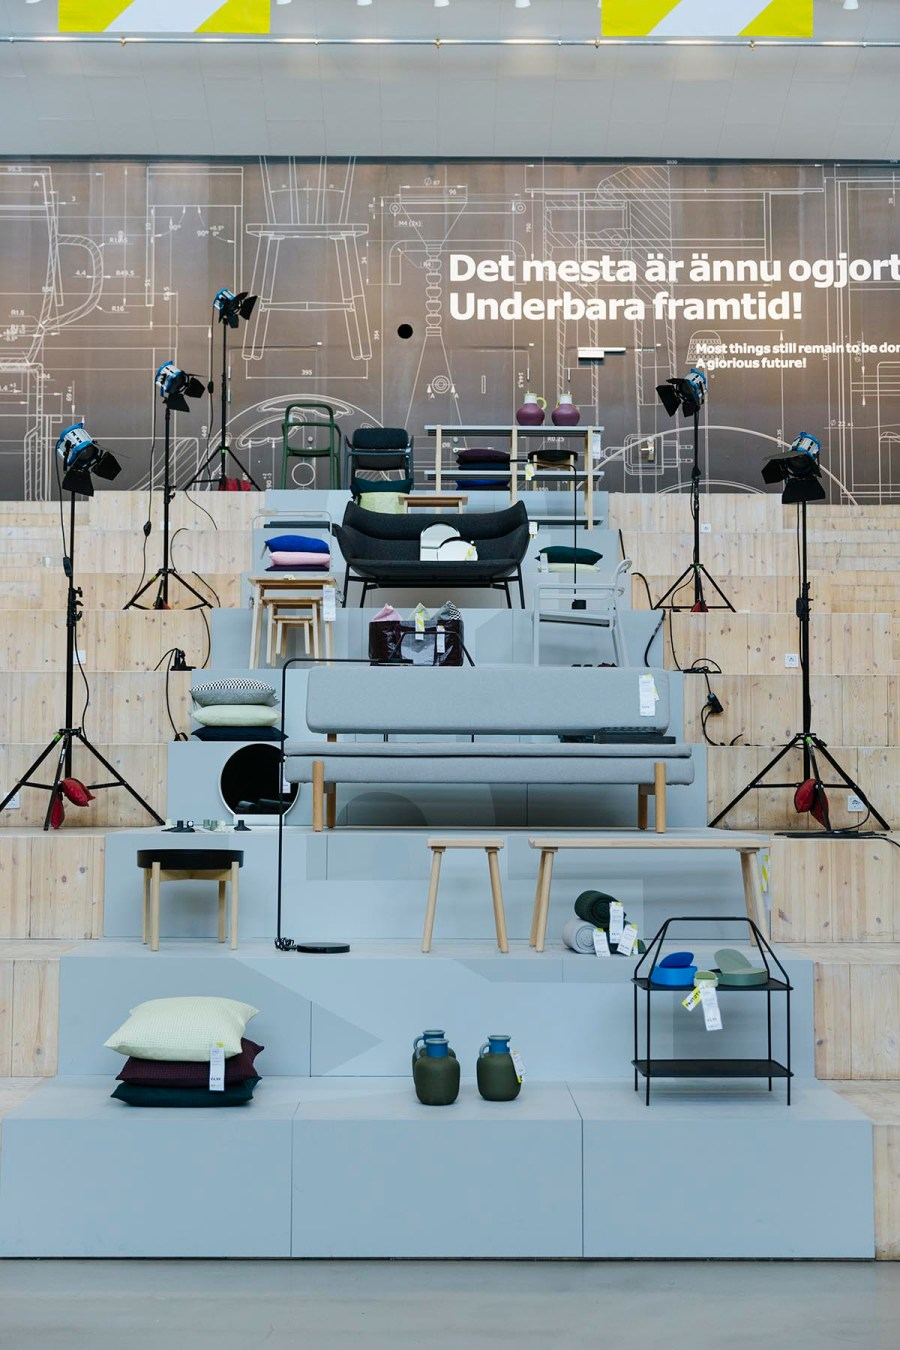 Upcoming collections to look forward to from IKEA - Ypperlig collection by HAY design